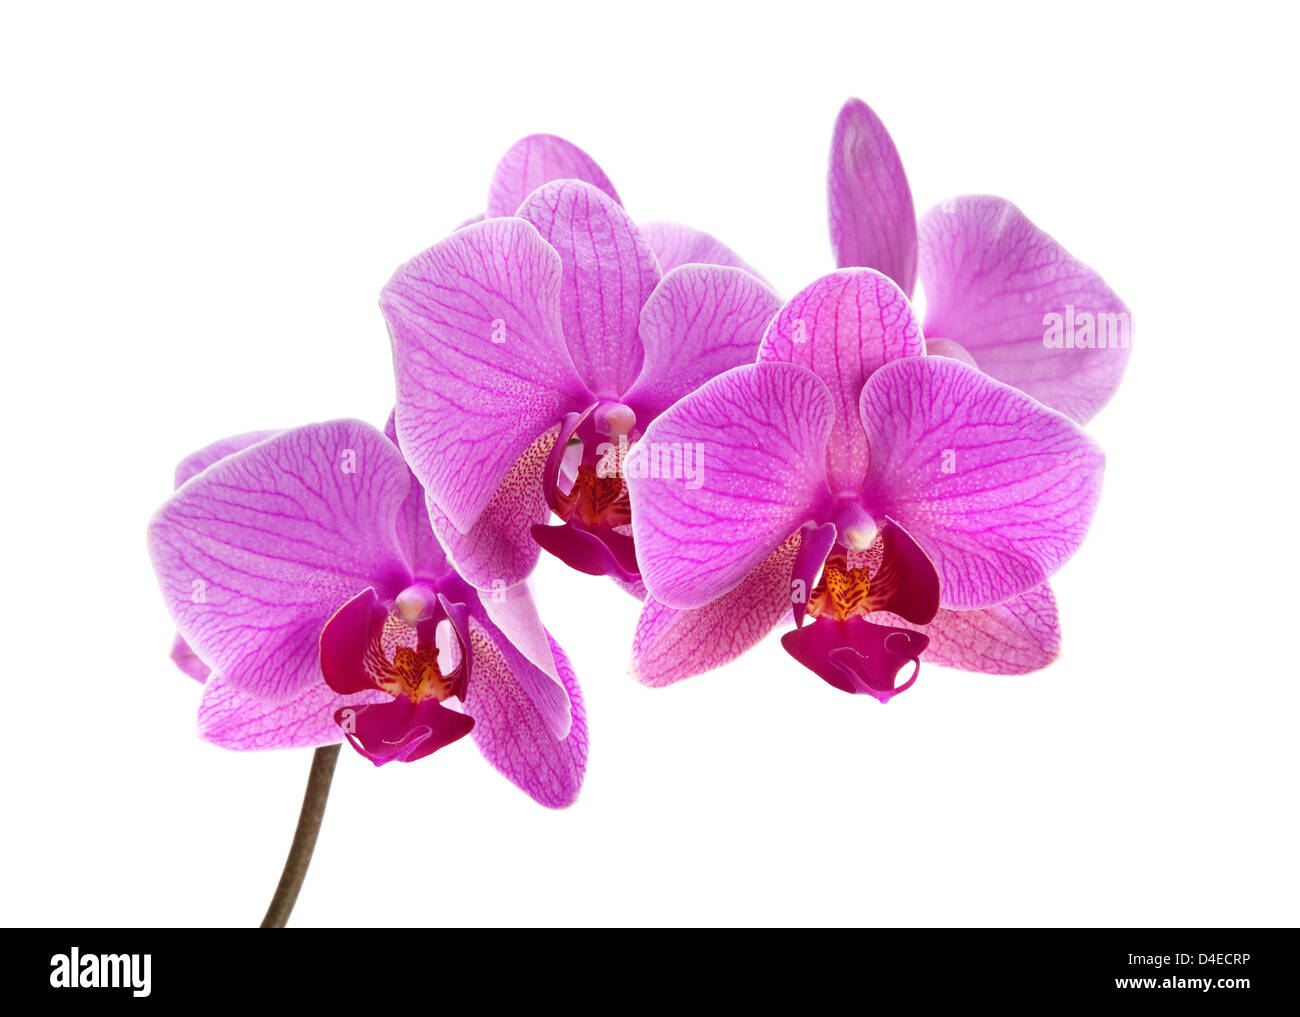 Purple orchid flower closeup isolated on white - Stock Image